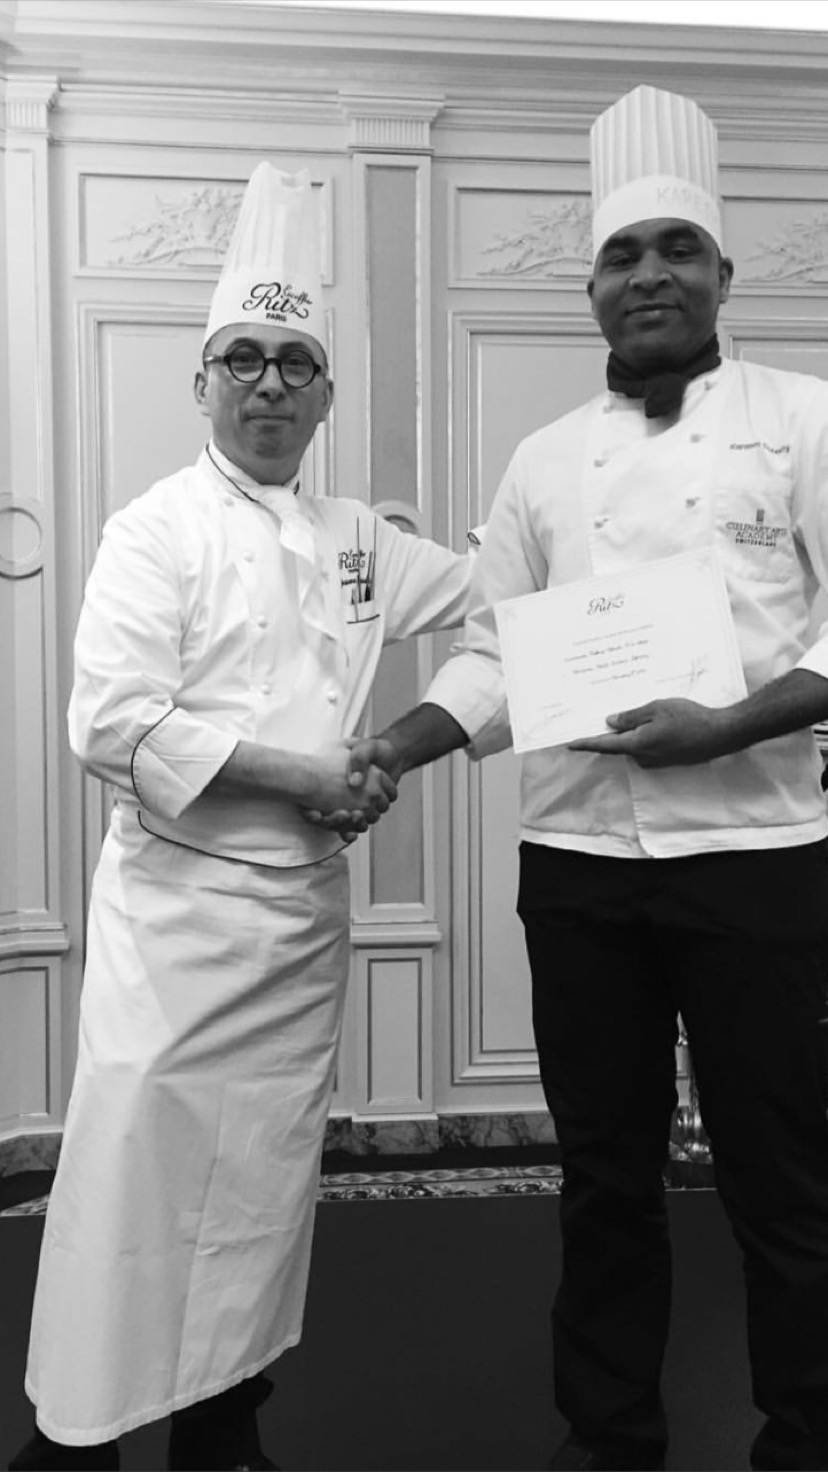 Kareem is currently working at The Burgenstock Resort in Lucerne, Switzerland as a practician chef.